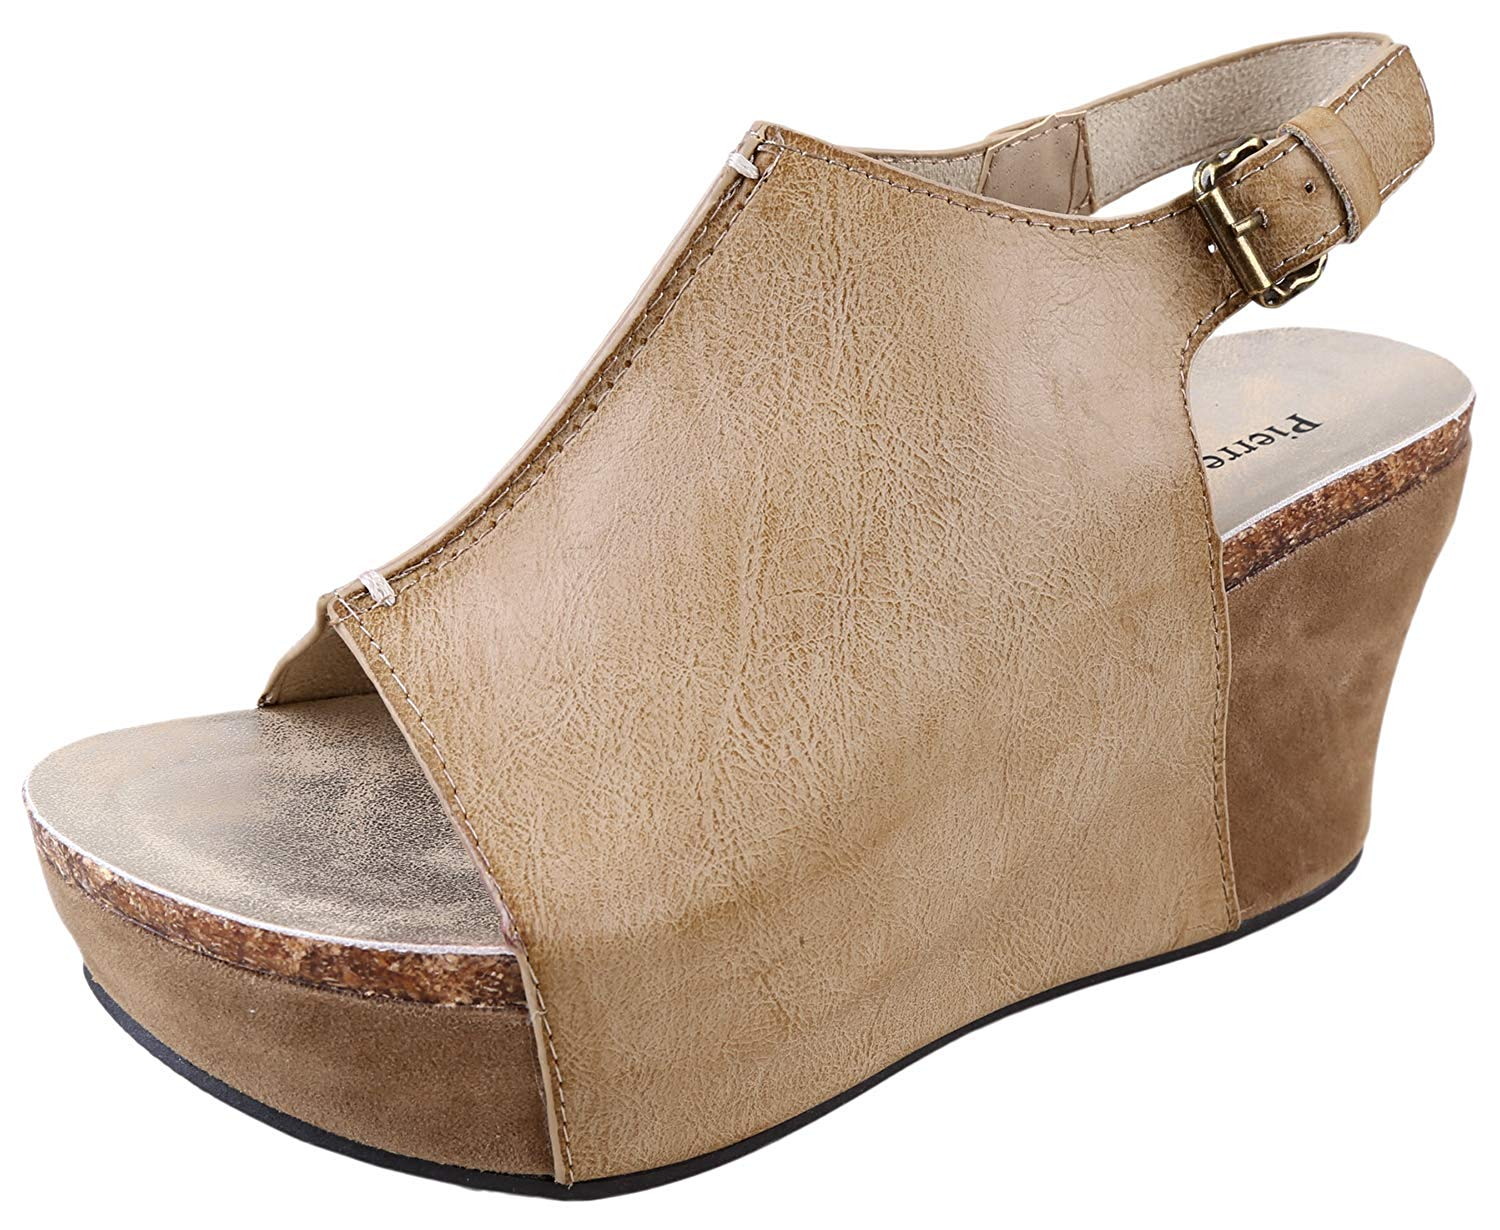 Pierre Dumas Hester-14 Women's Platform Wedge Open Toe Sandals